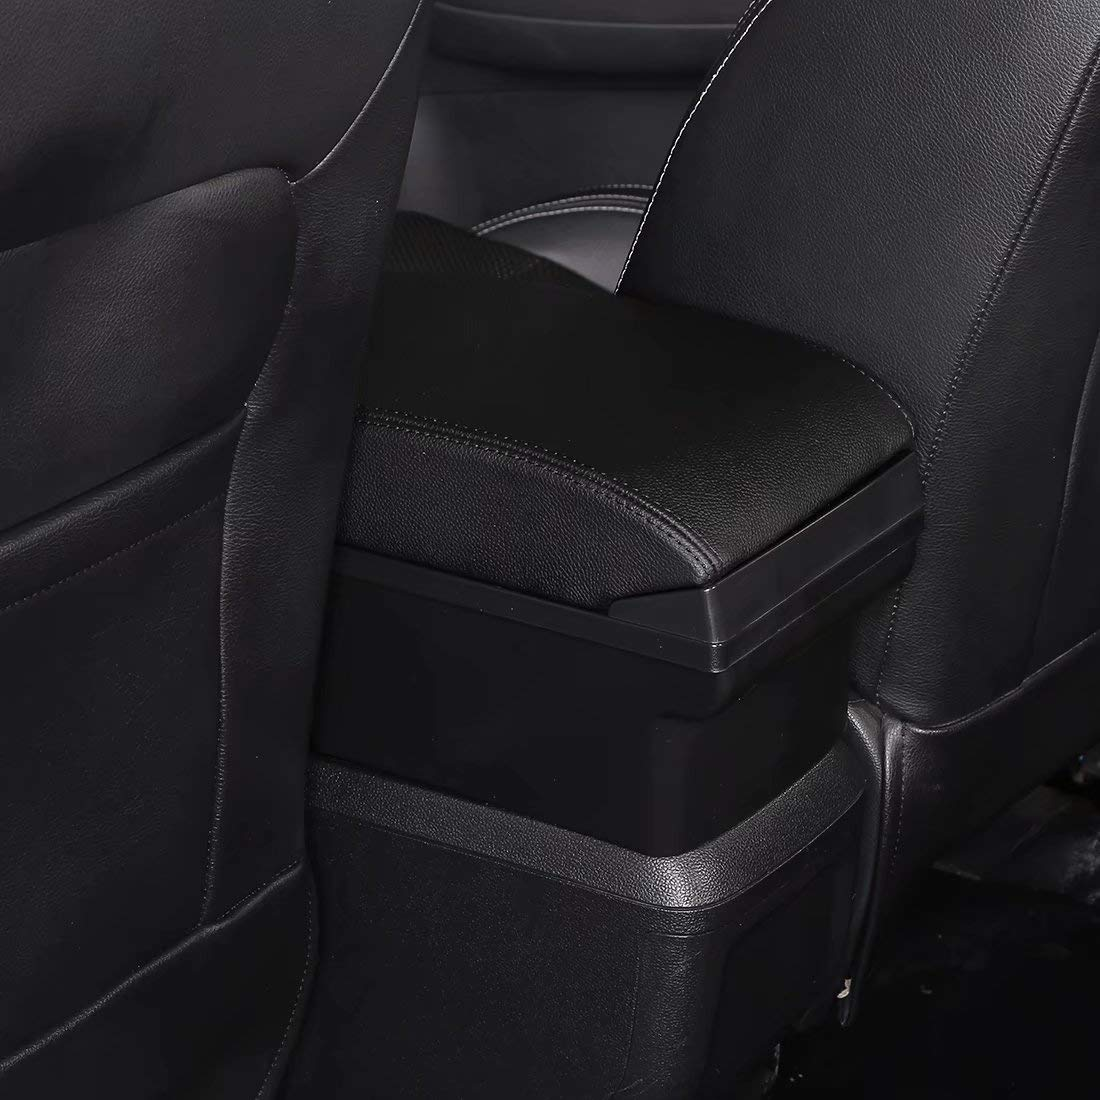 HRCHCG for Nissan Juke Consoles Armrest Box Double Layer Storage with 3 USB Port